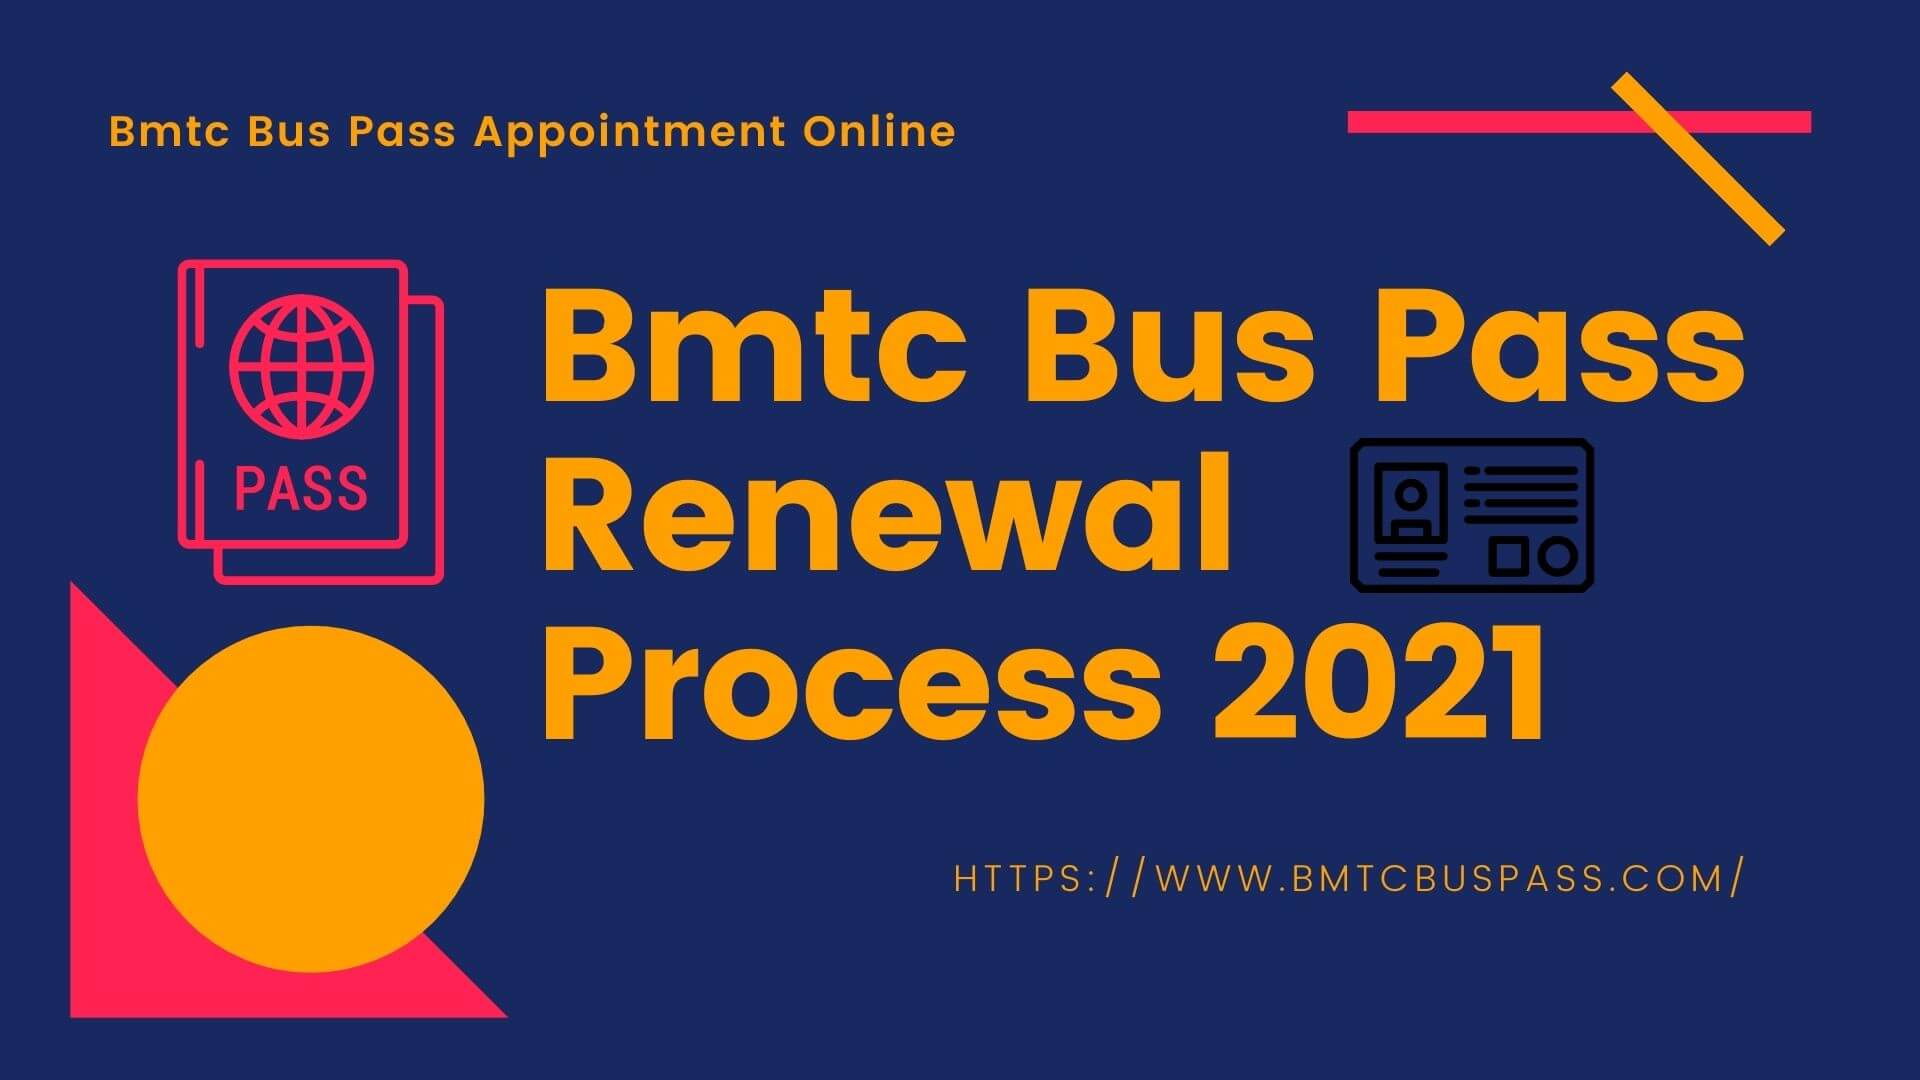 Bmtc Bus Pass Renewal And Appointment Process In 2021